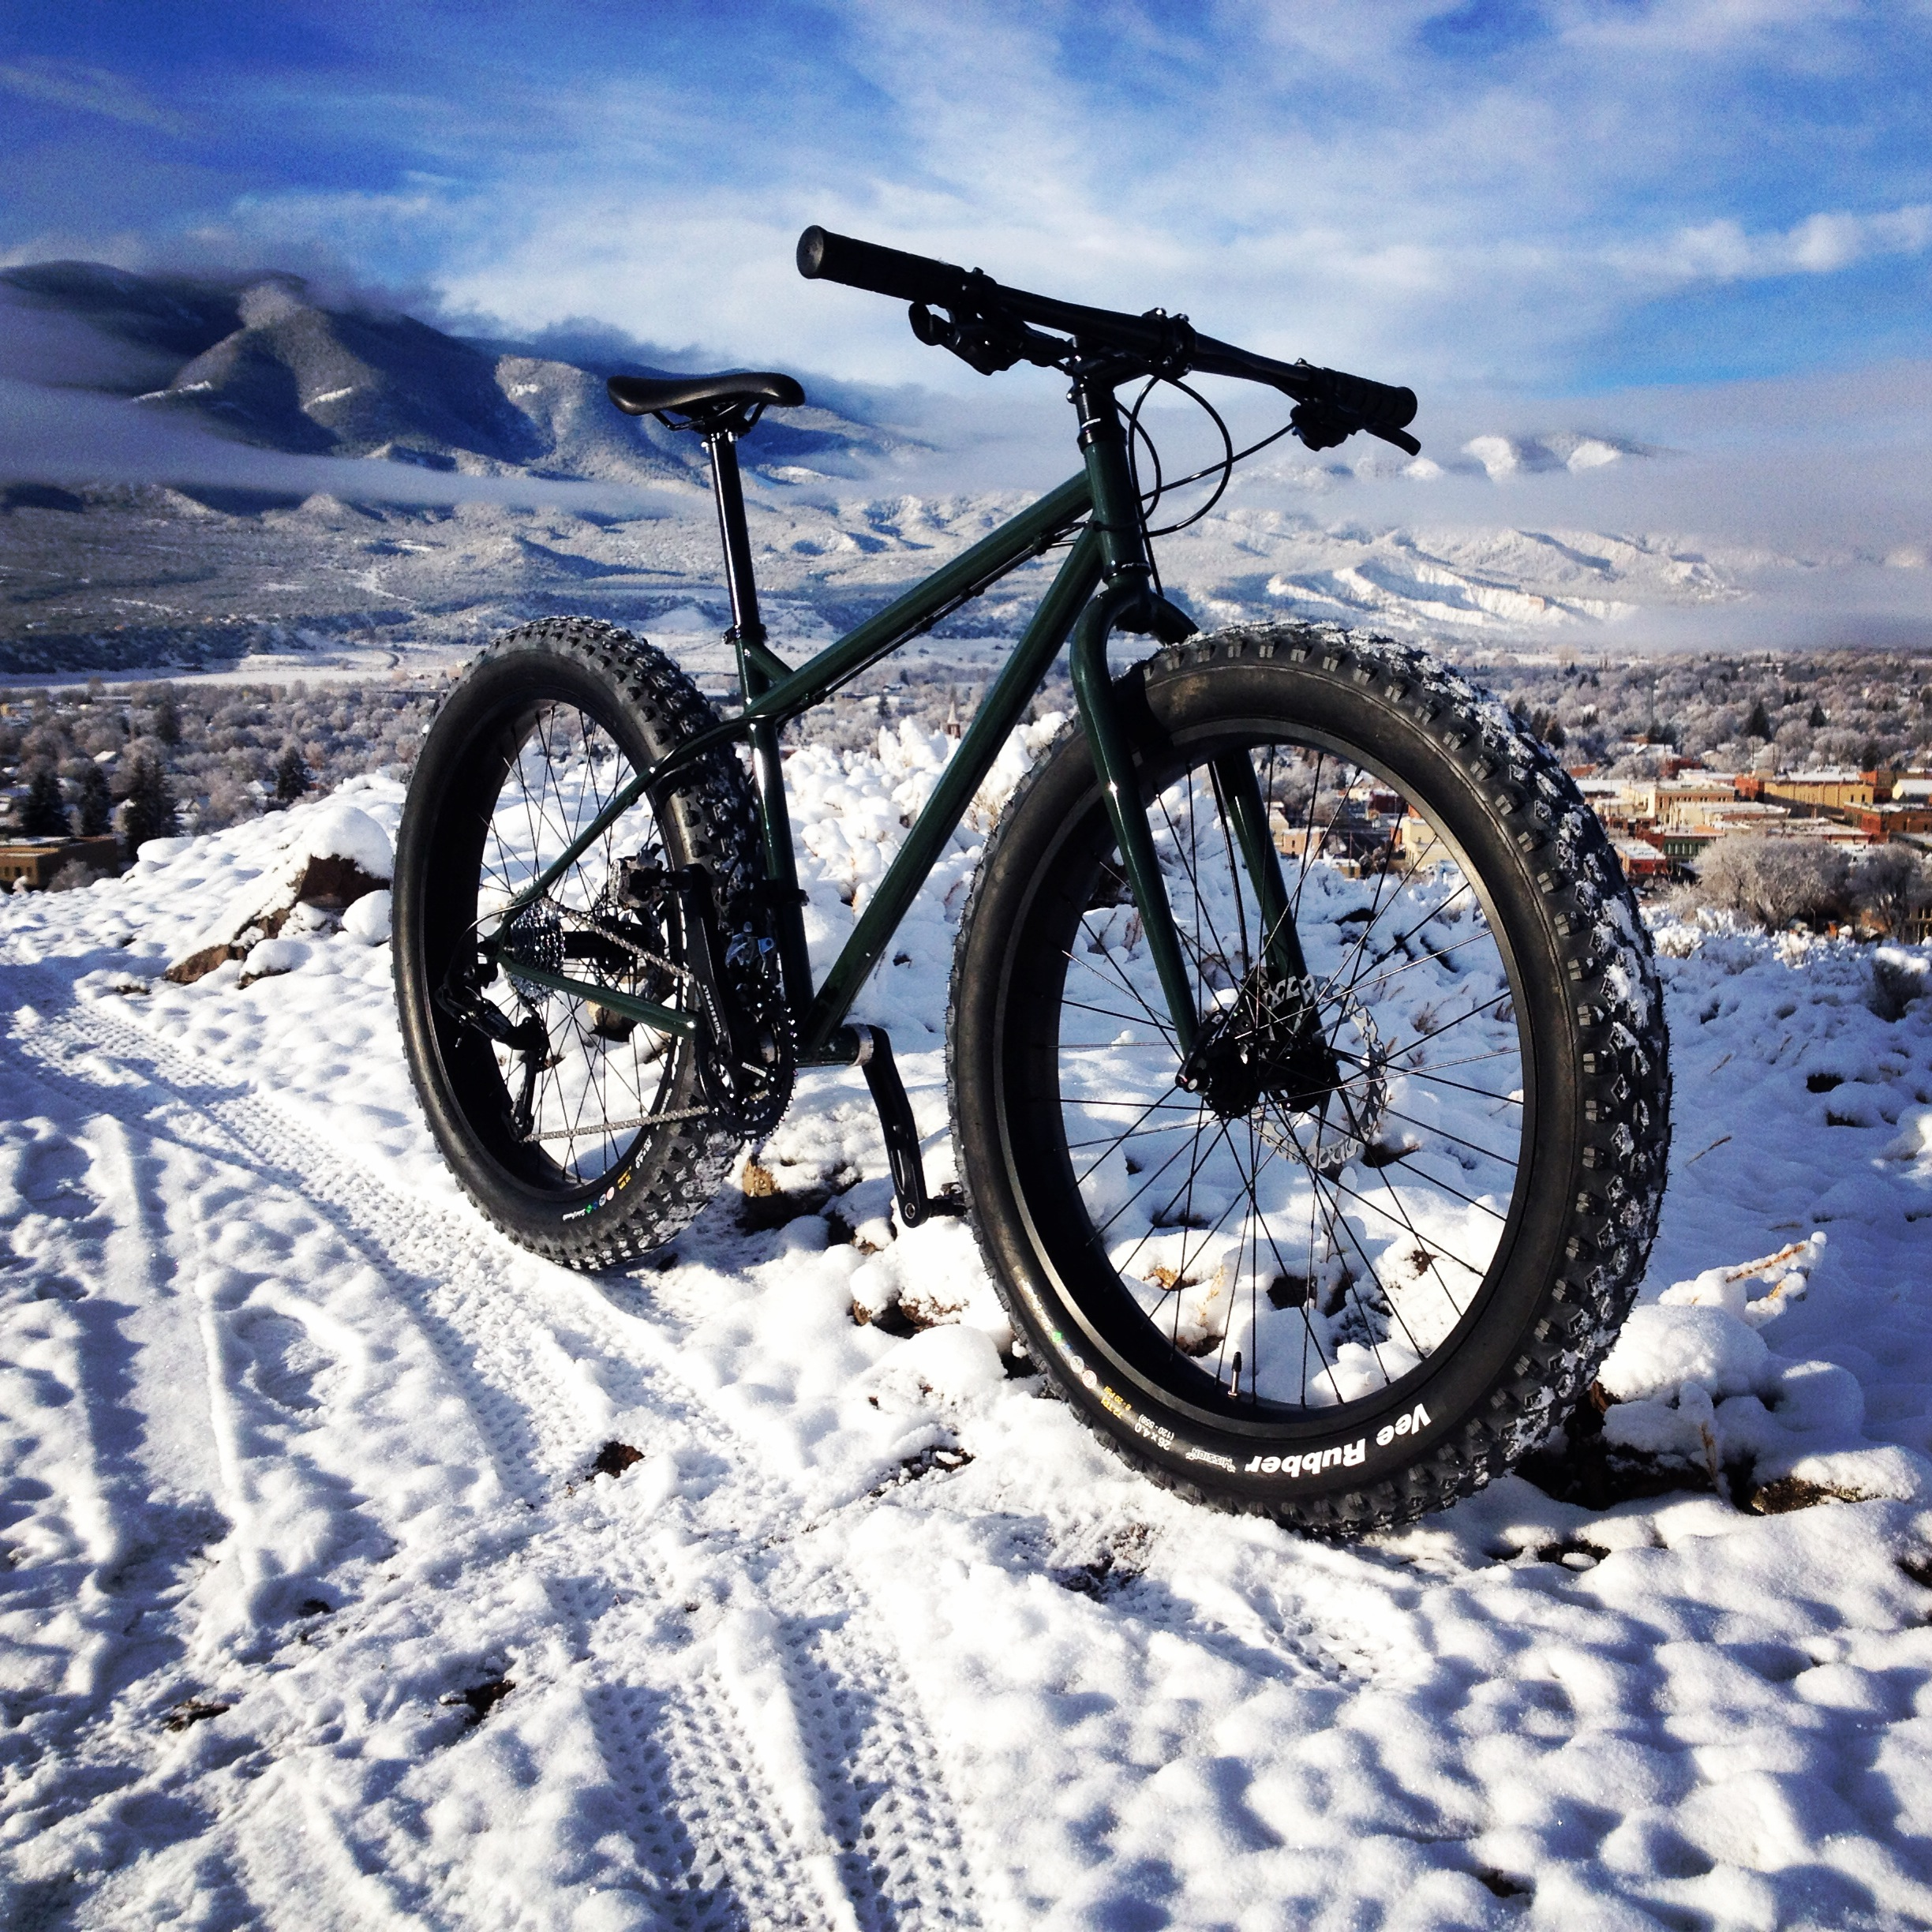 Full Suspension Fat Bike Lenz Sport Fatillac |Fat Bike